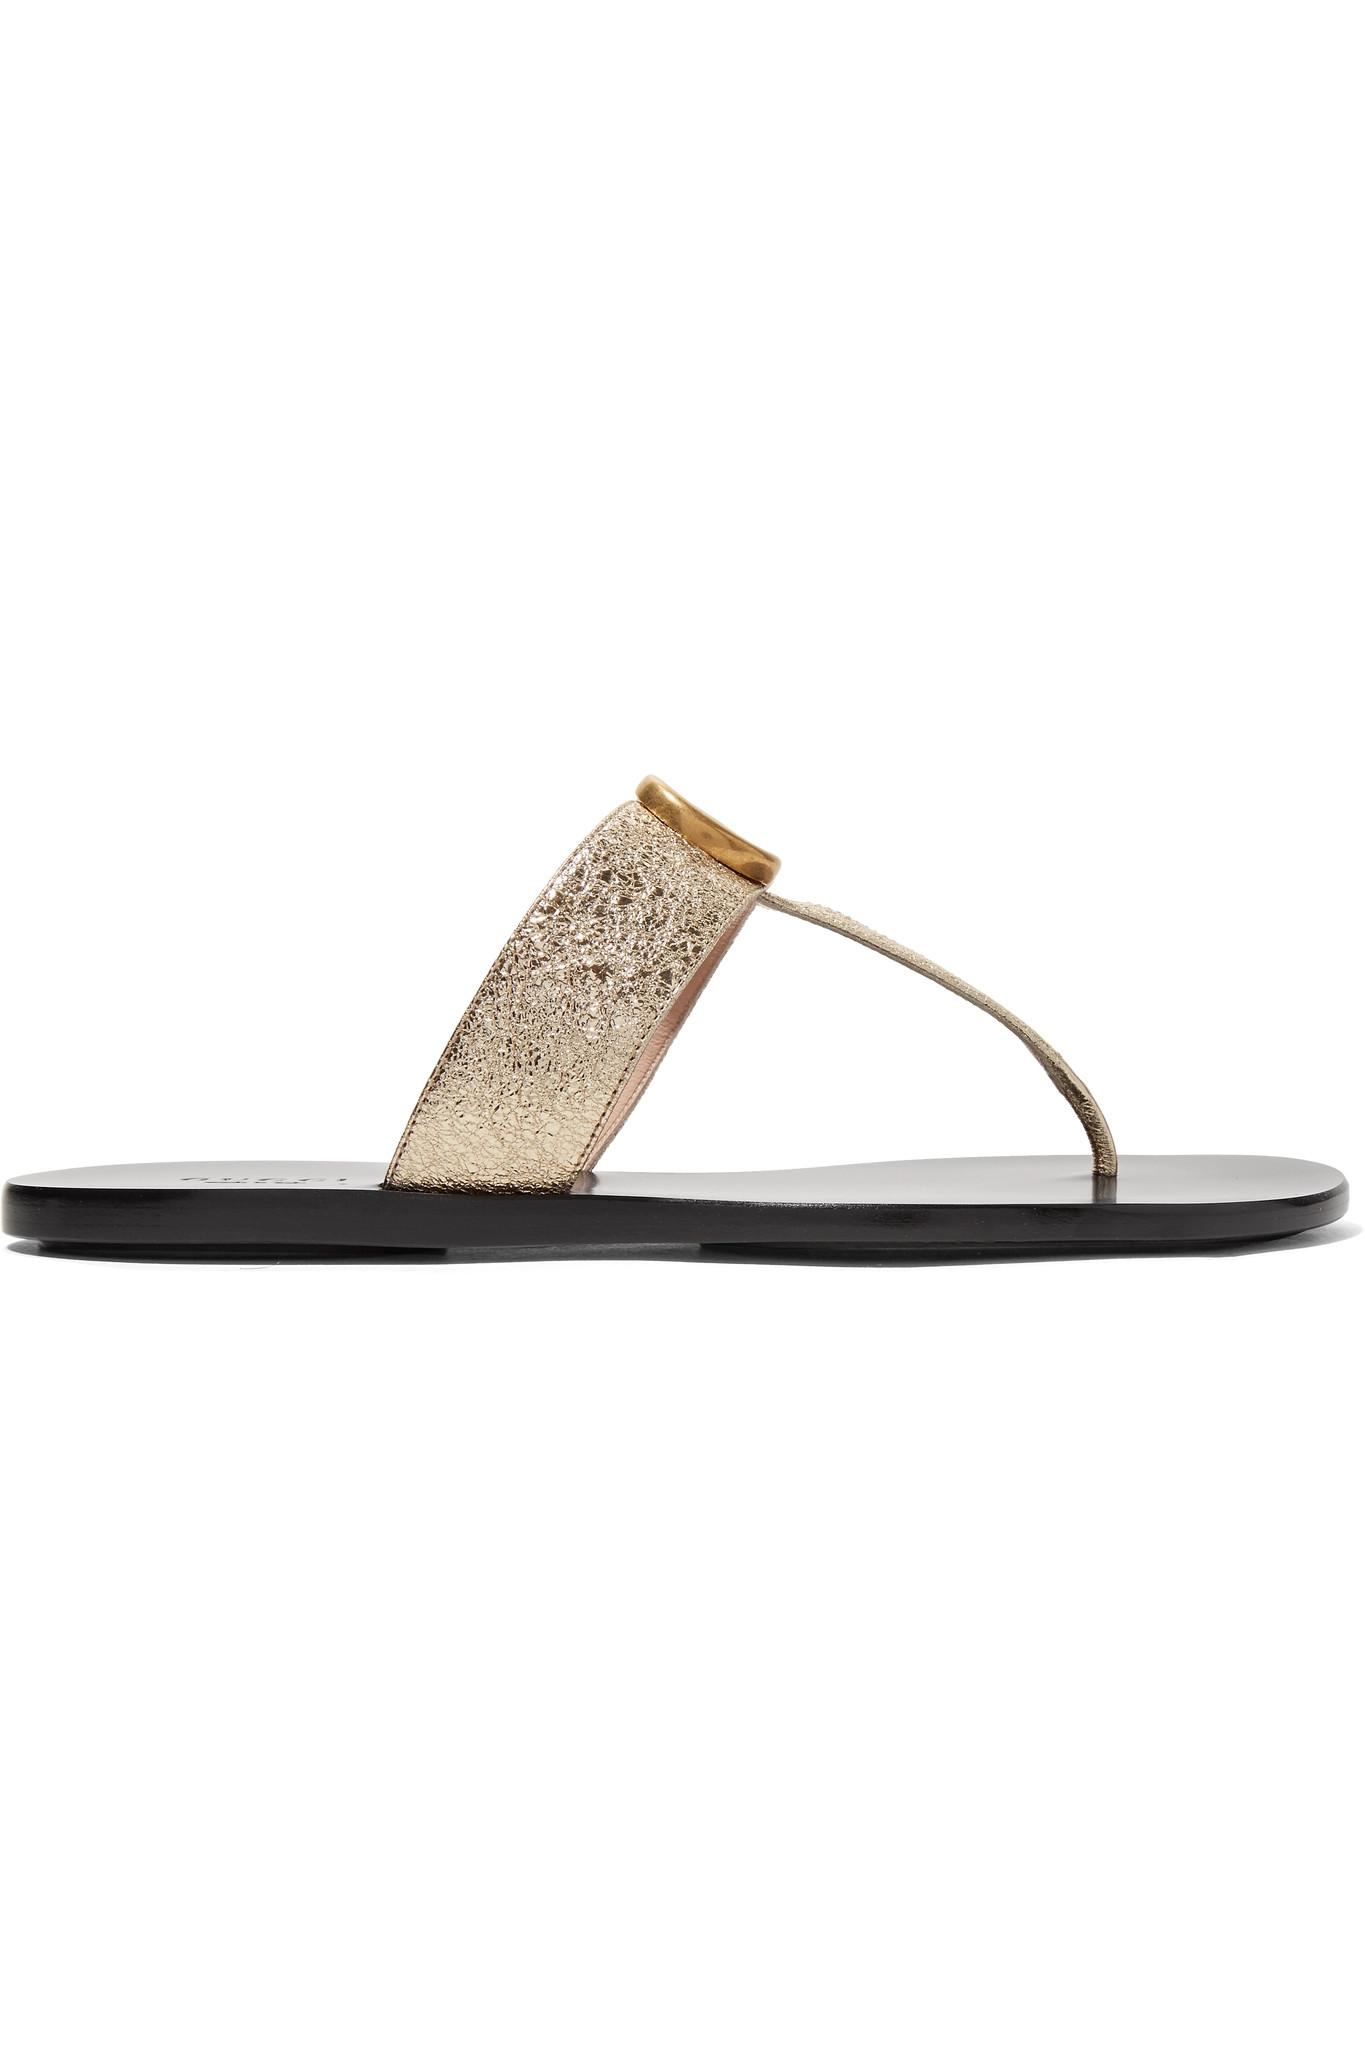 7004ce63e2dc78 Gucci Marmont Metallic Textured-leather Sandals in Metallic - Lyst